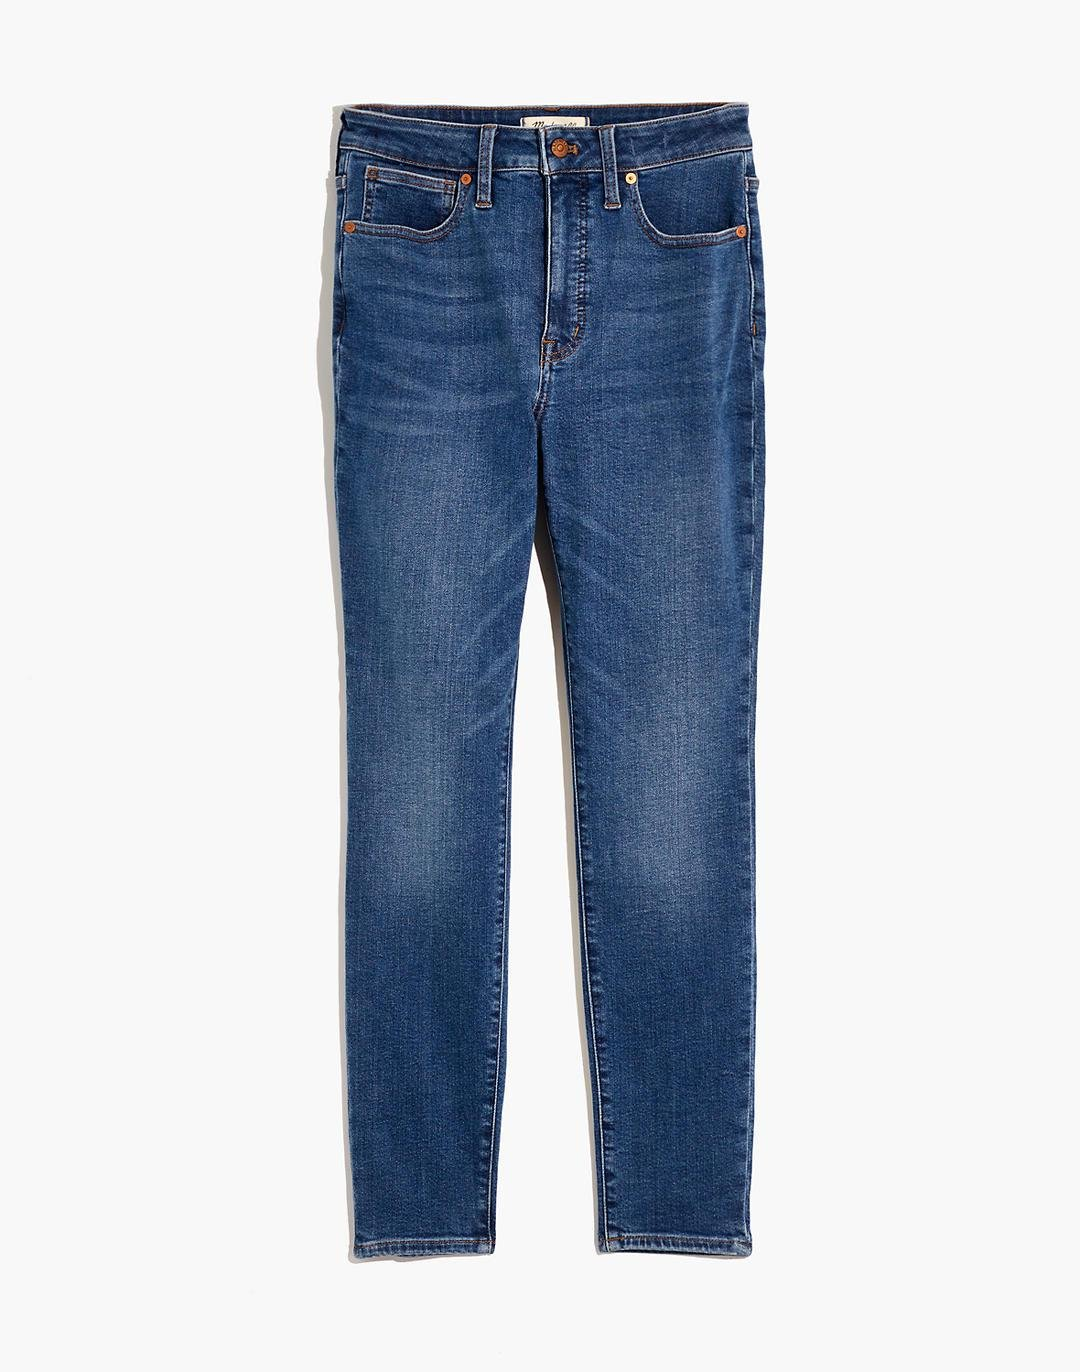 Petite Curvy High-Rise Skinny Jeans in Wendover Wash: TENCEL™ Denim Edition 4